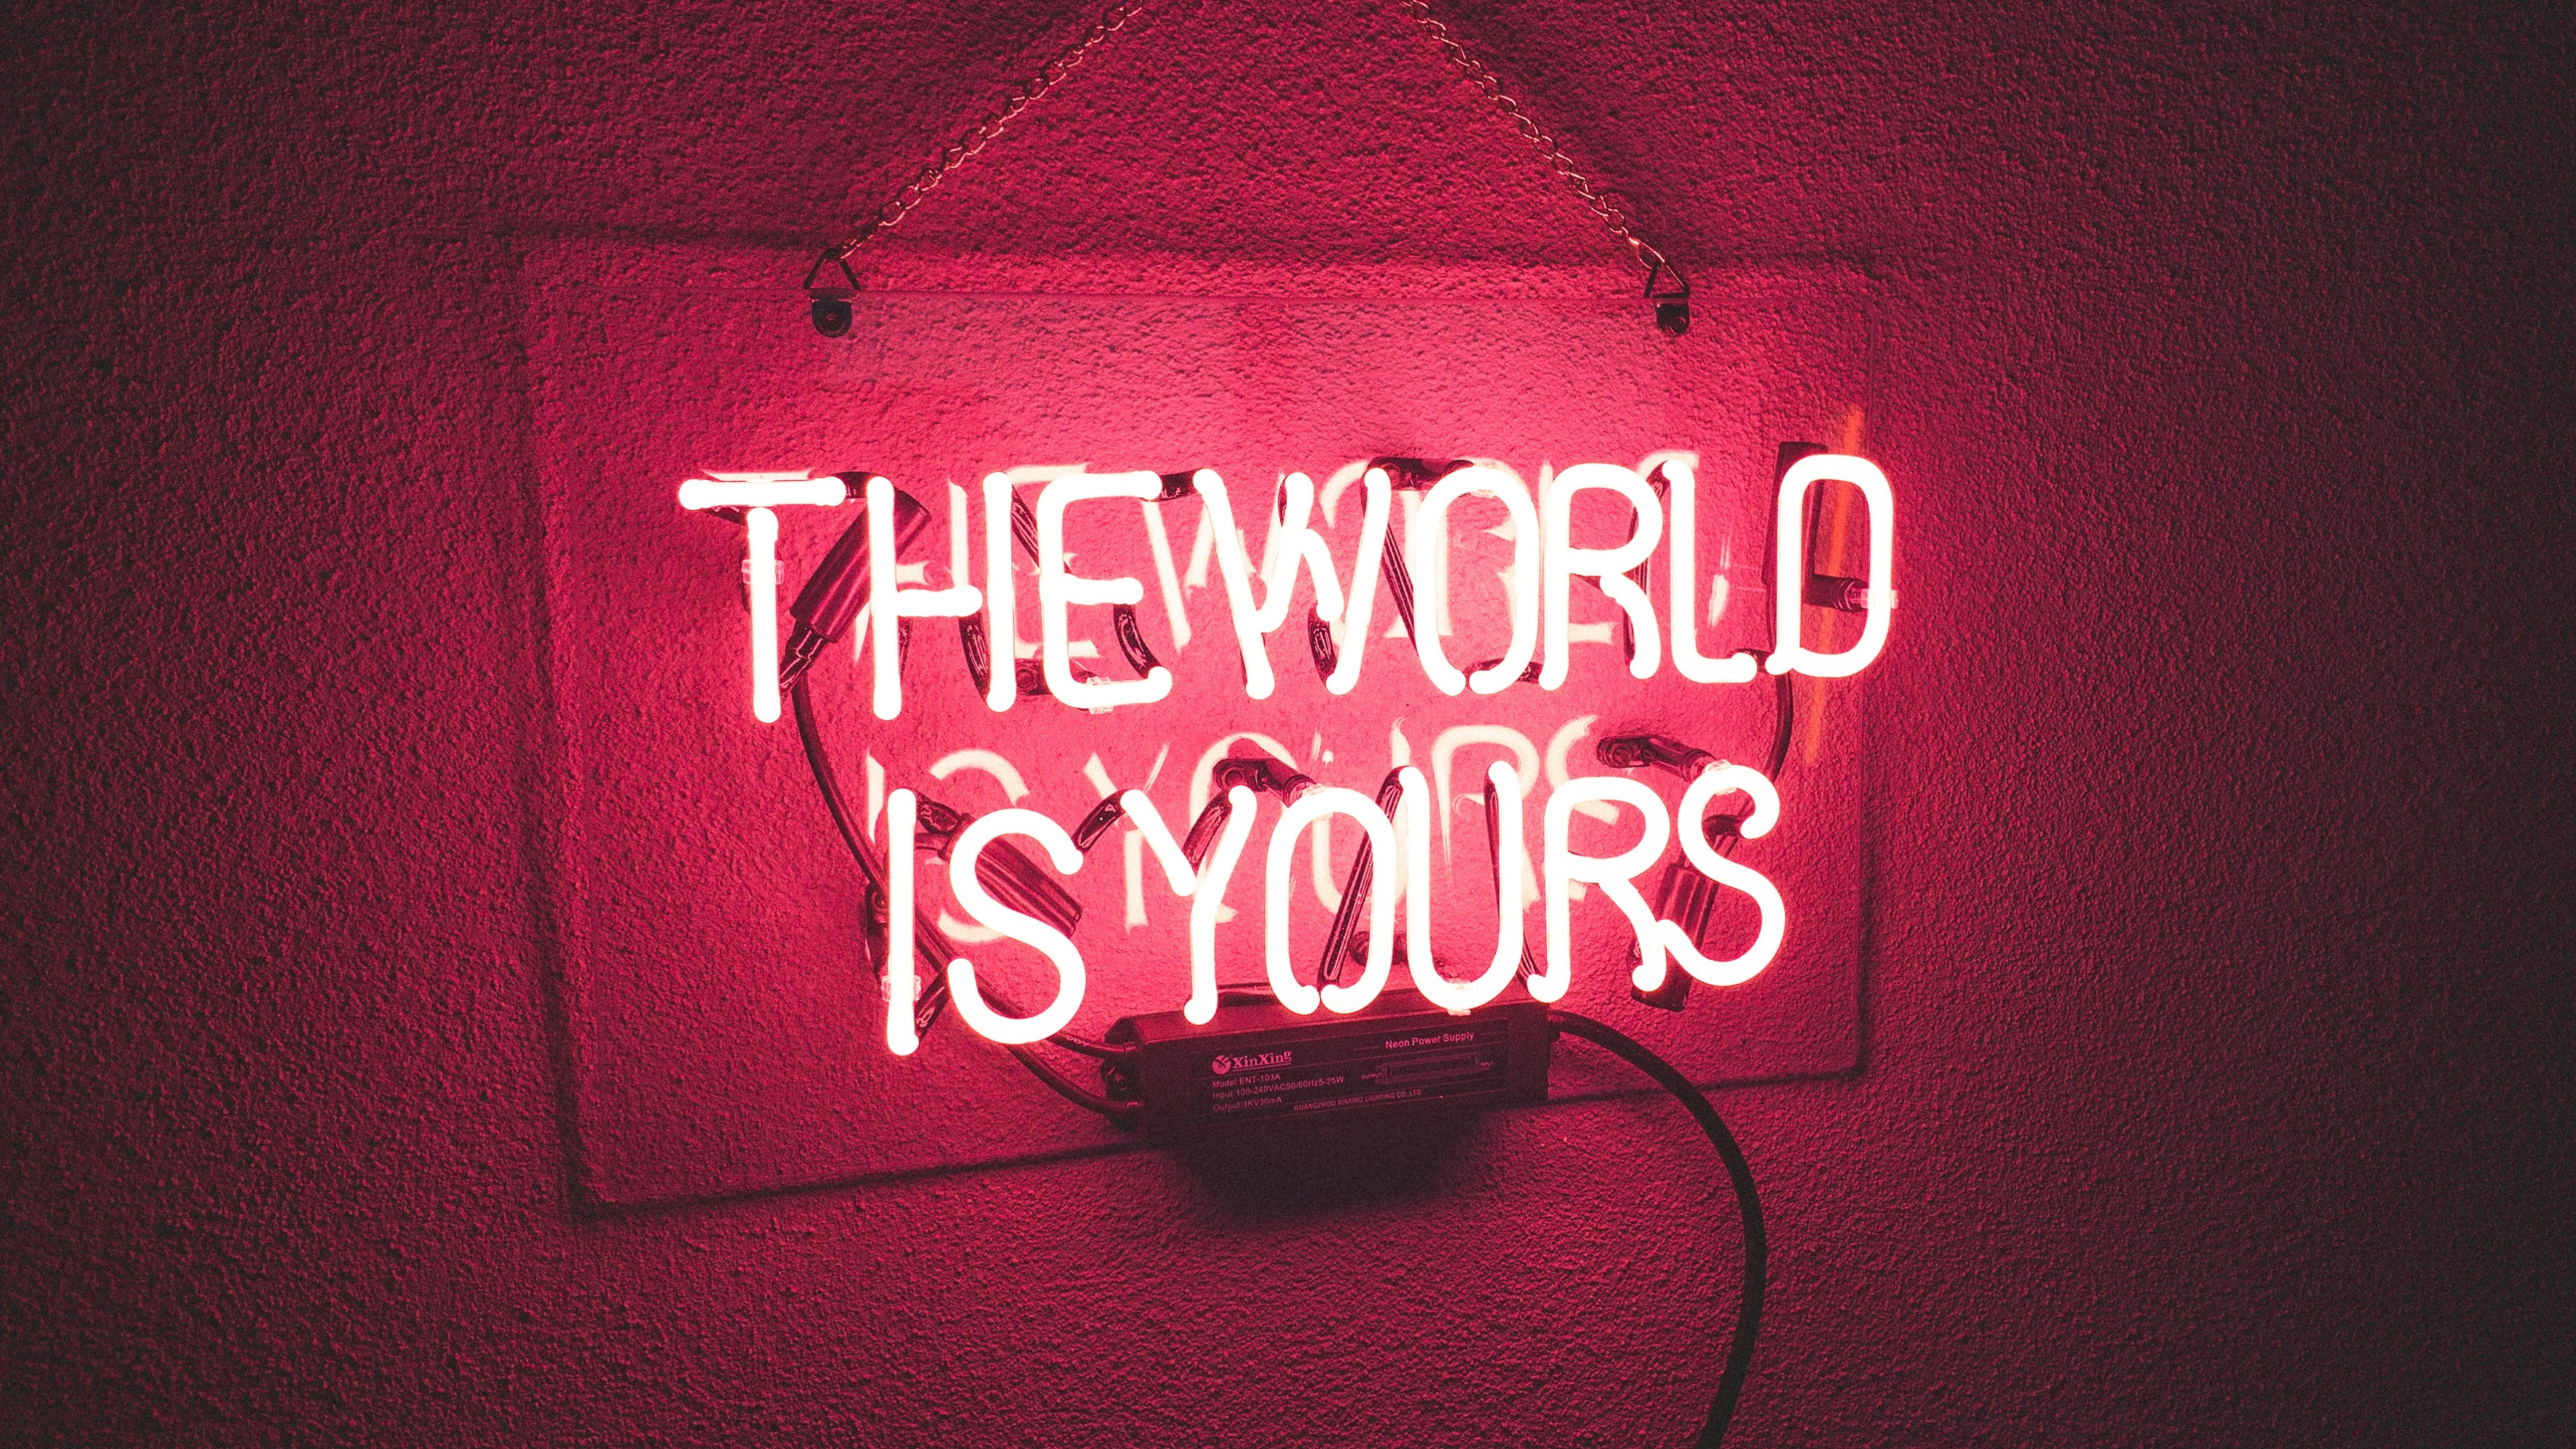 Neonlight 4k Wallpaper Red Background Neon Sign Glowing The World Is Yours Quotes 2149